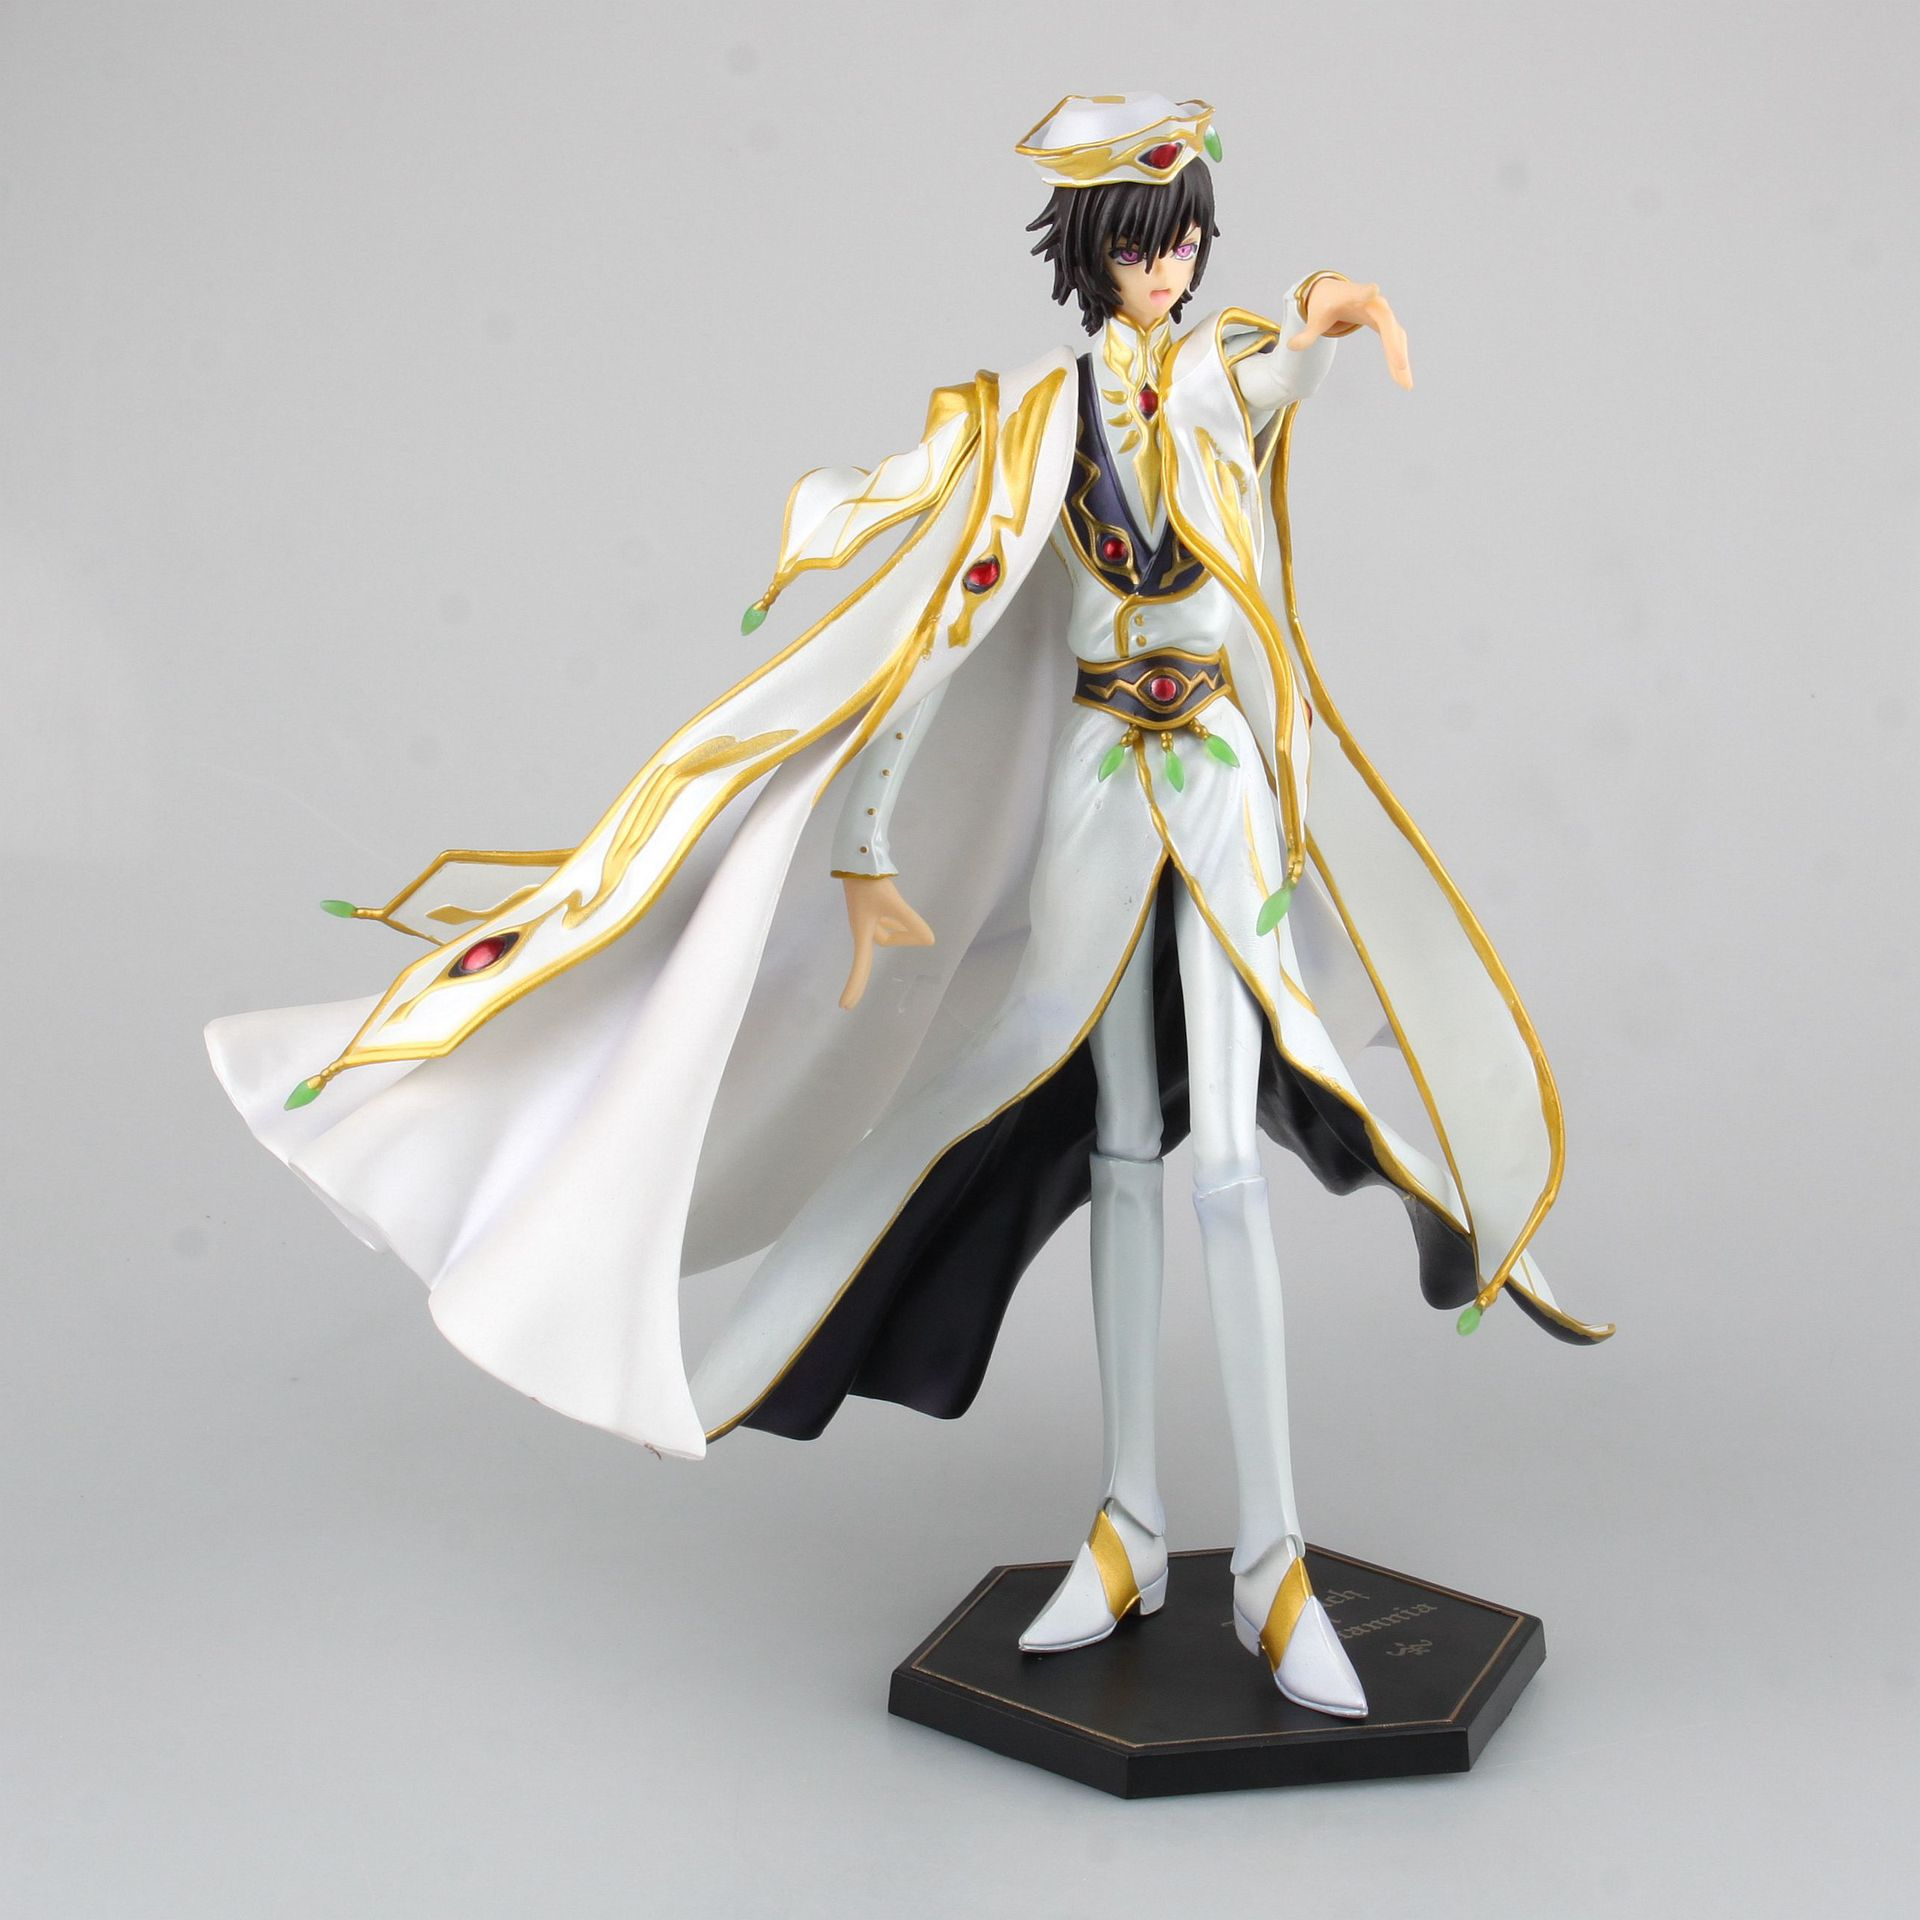 1pcs 24cm pvc Japanese anime figure Code Geass Lelouch Lamperouge action figure collectible model toys brinquedos 2016 1pcs 25cm pvc japanese anime figure play arts the flash action figure collectible model toys brinquedos